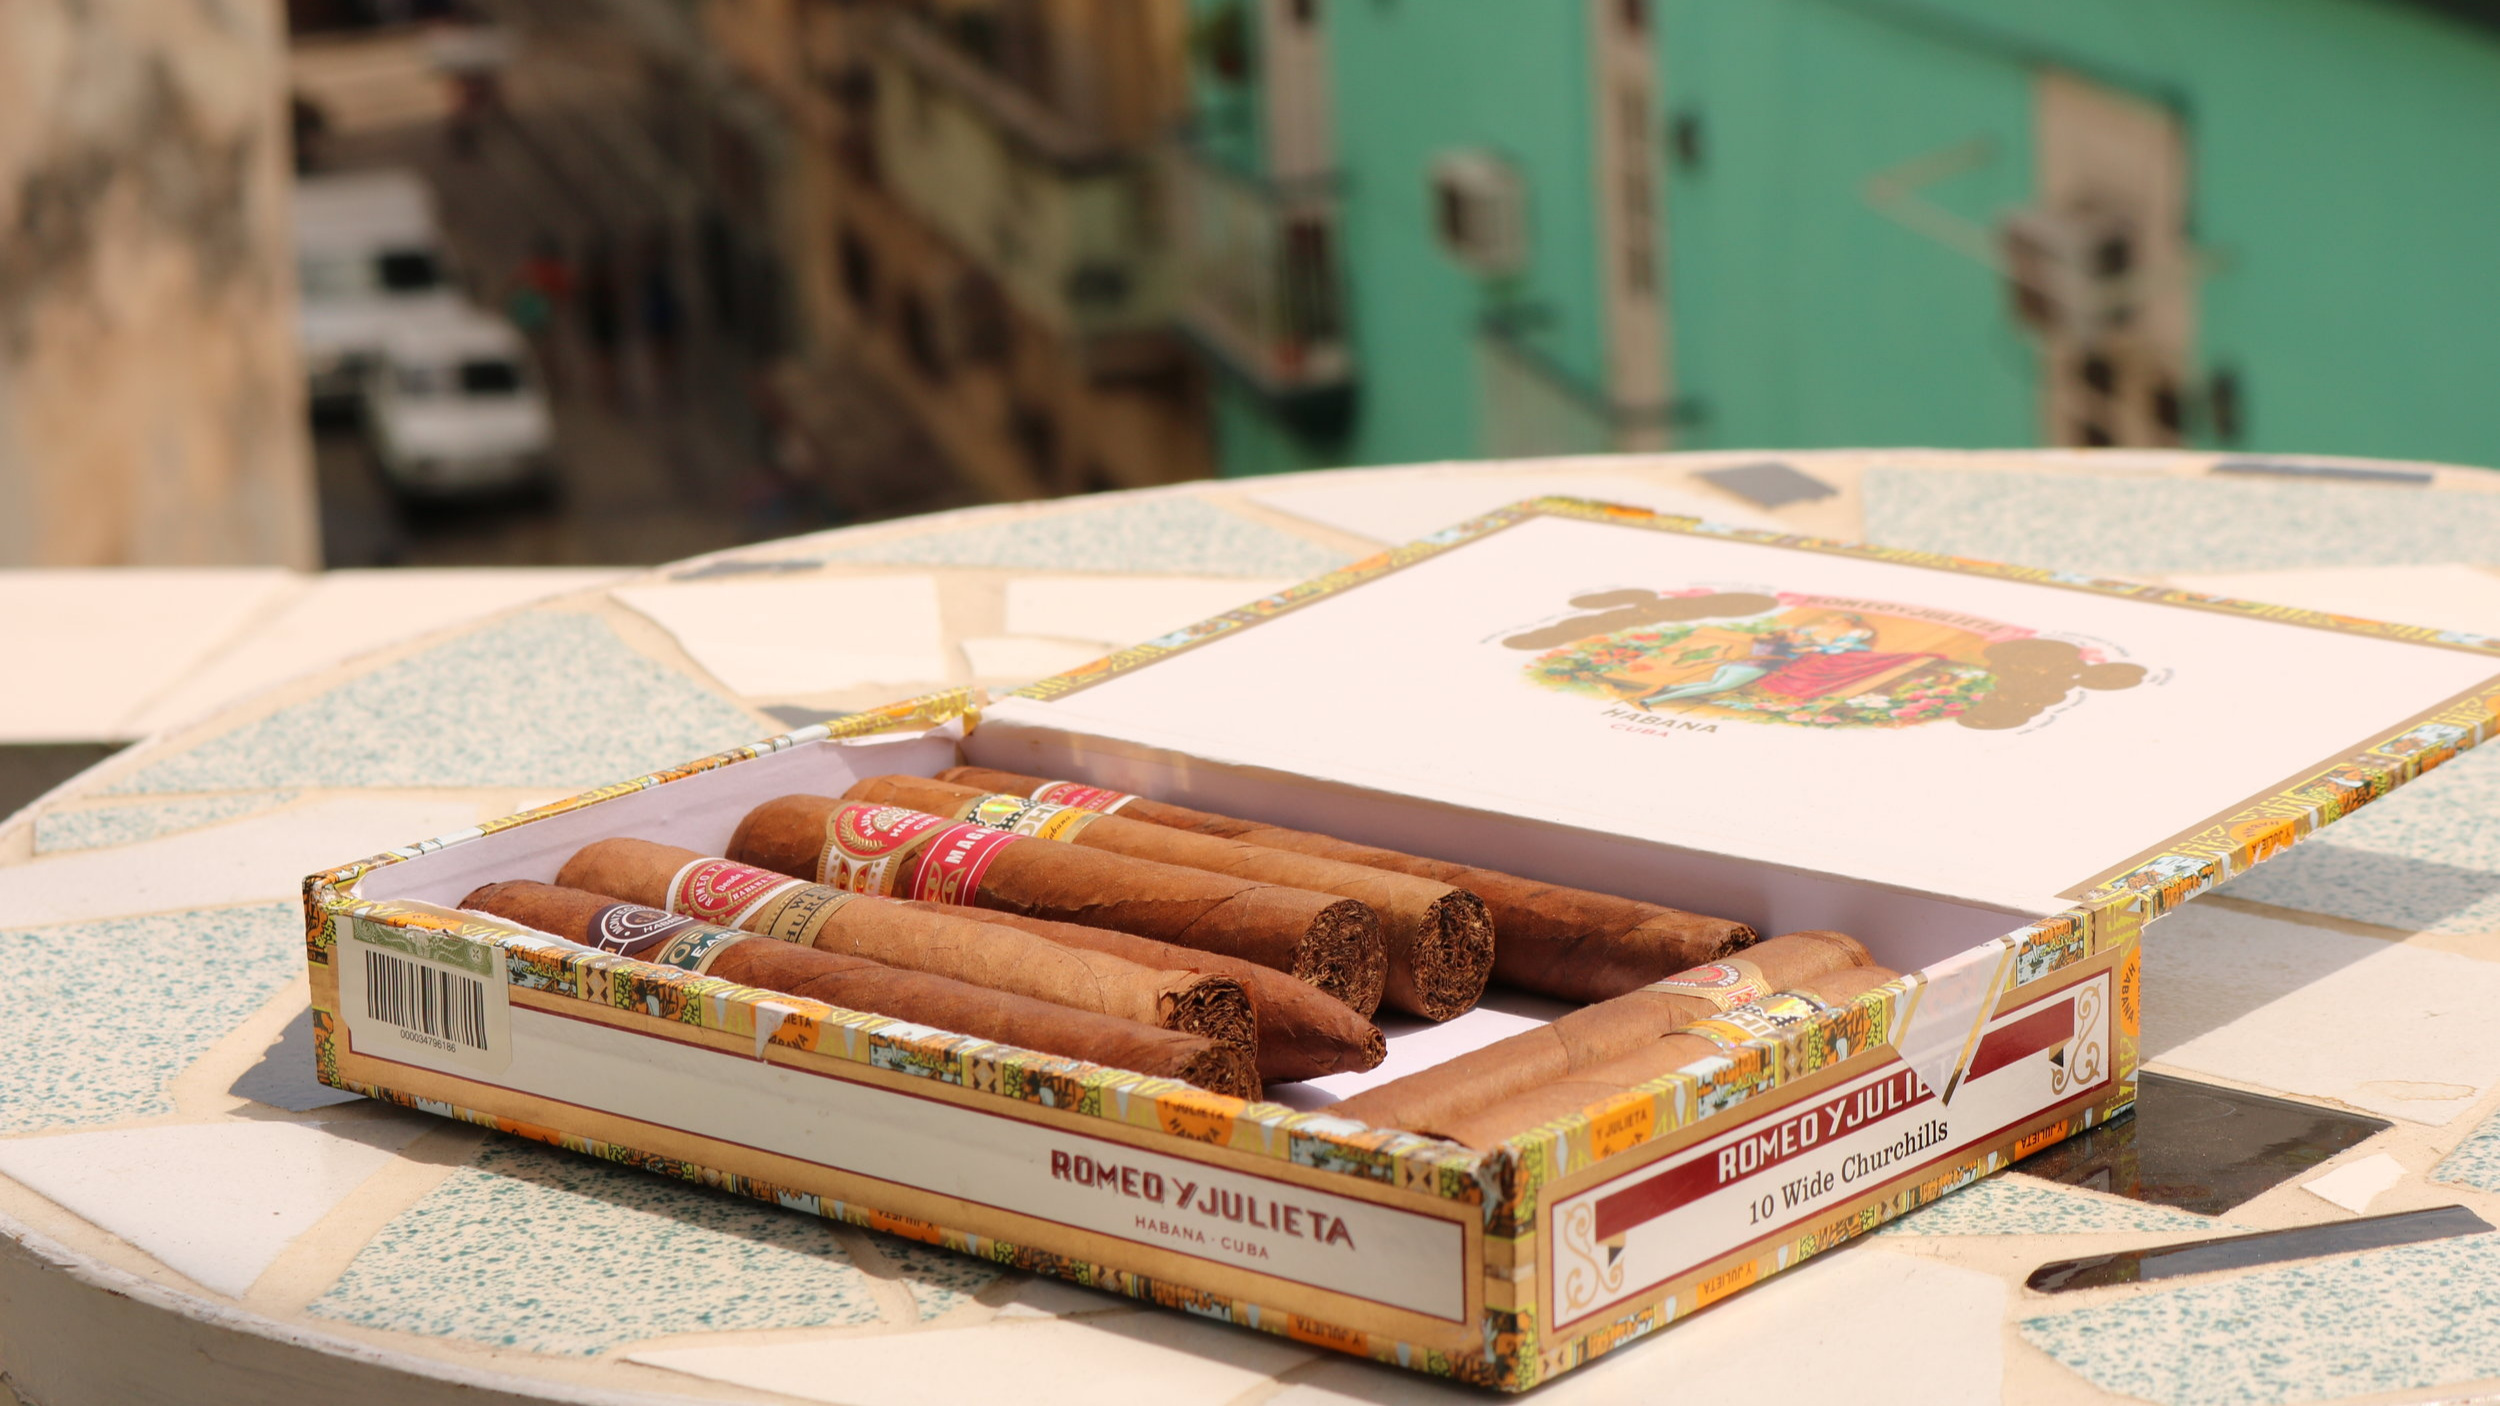 Only by Cuban cigars from trusted vendors